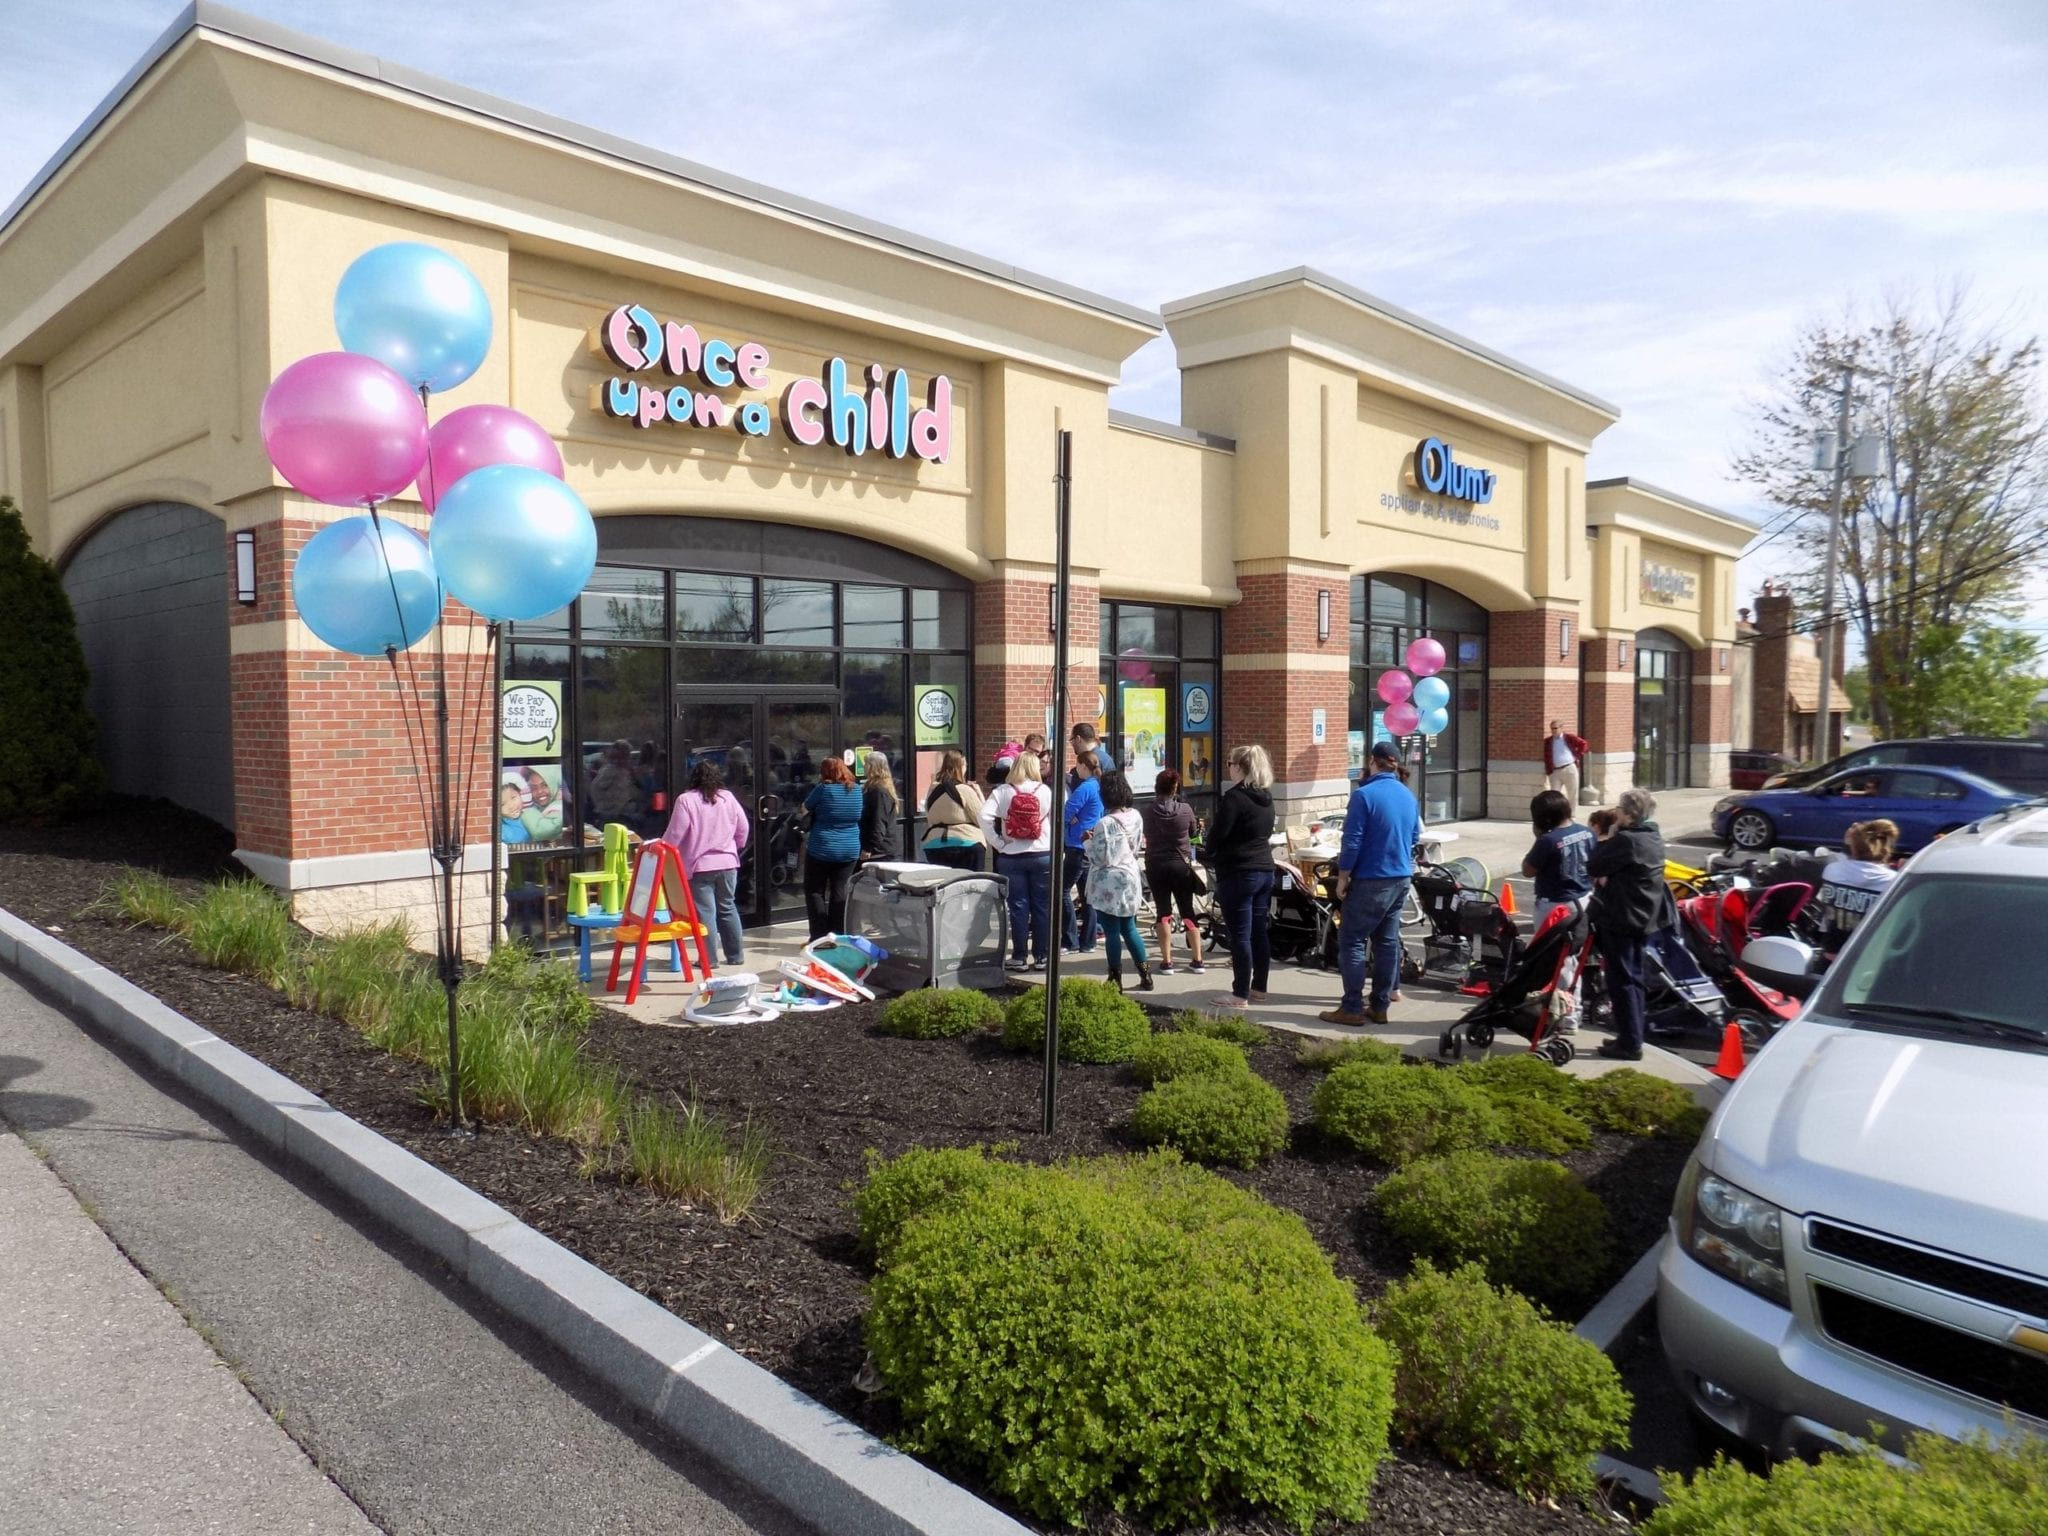 Eagle News Online – Once Upon A Child store opens on